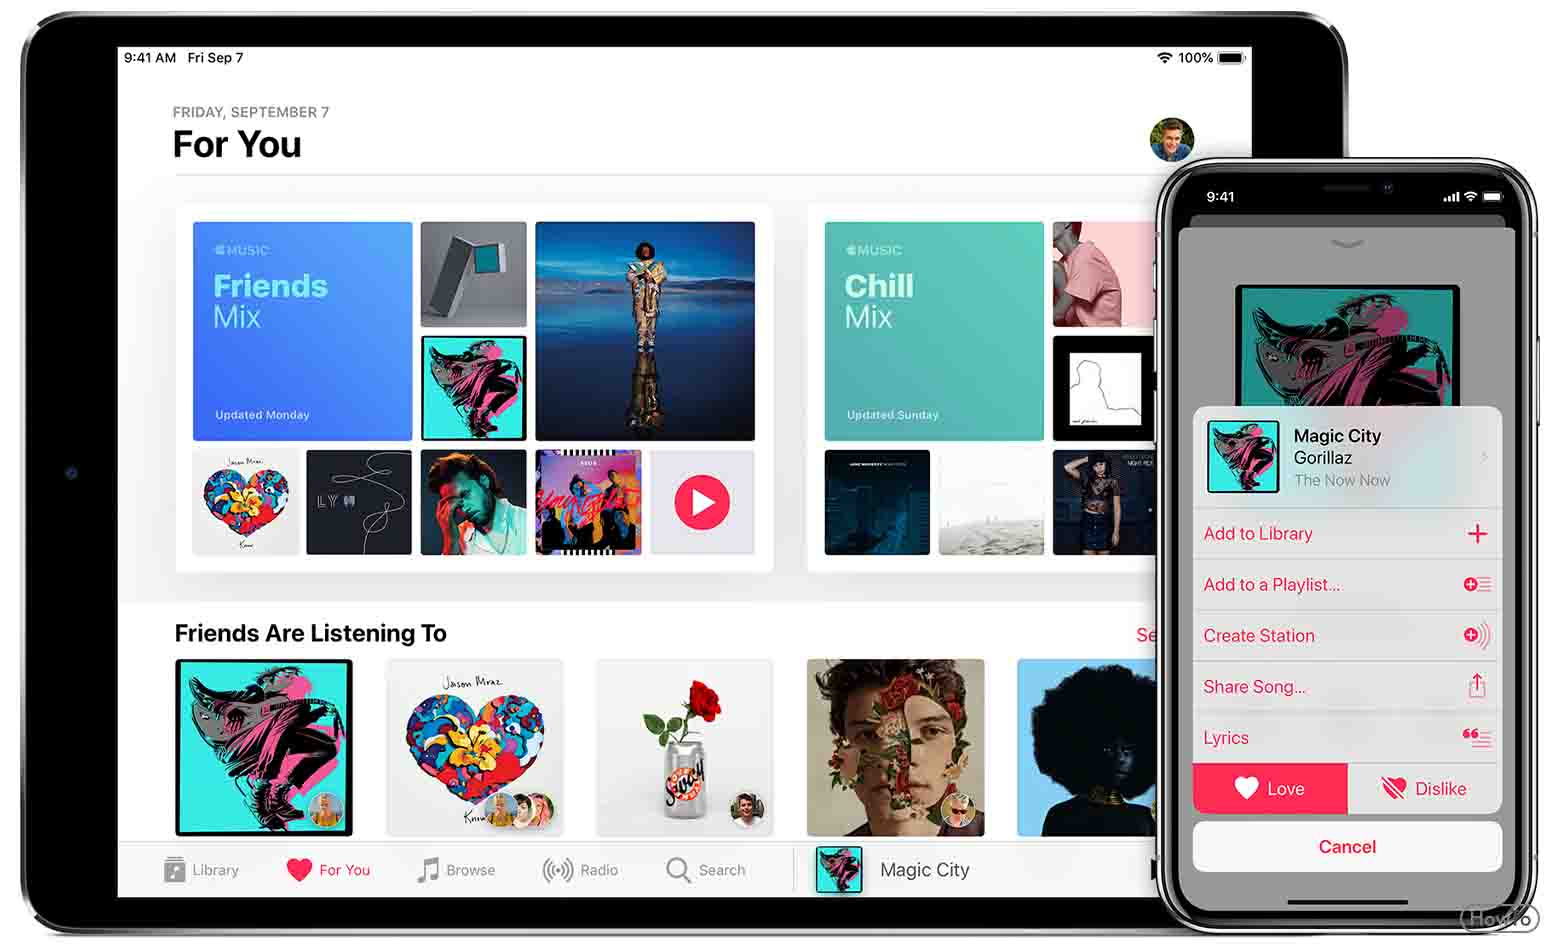 5 Steps to Download Songs and Videos from Apple Music - Howto